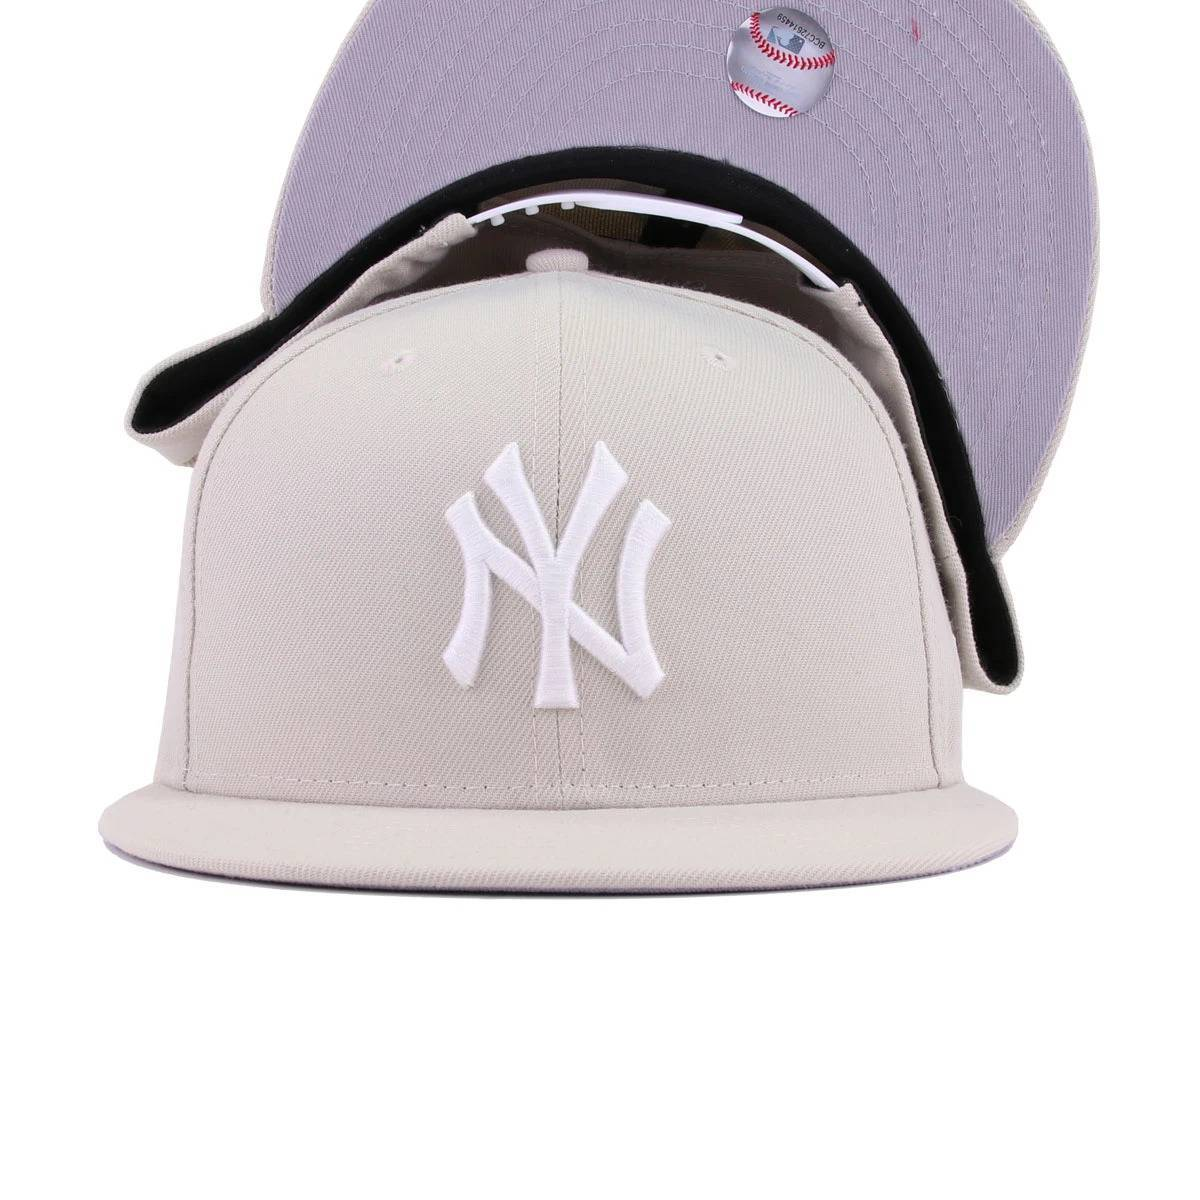 New York Yankees Stone White New Era 9Fifty Snapback